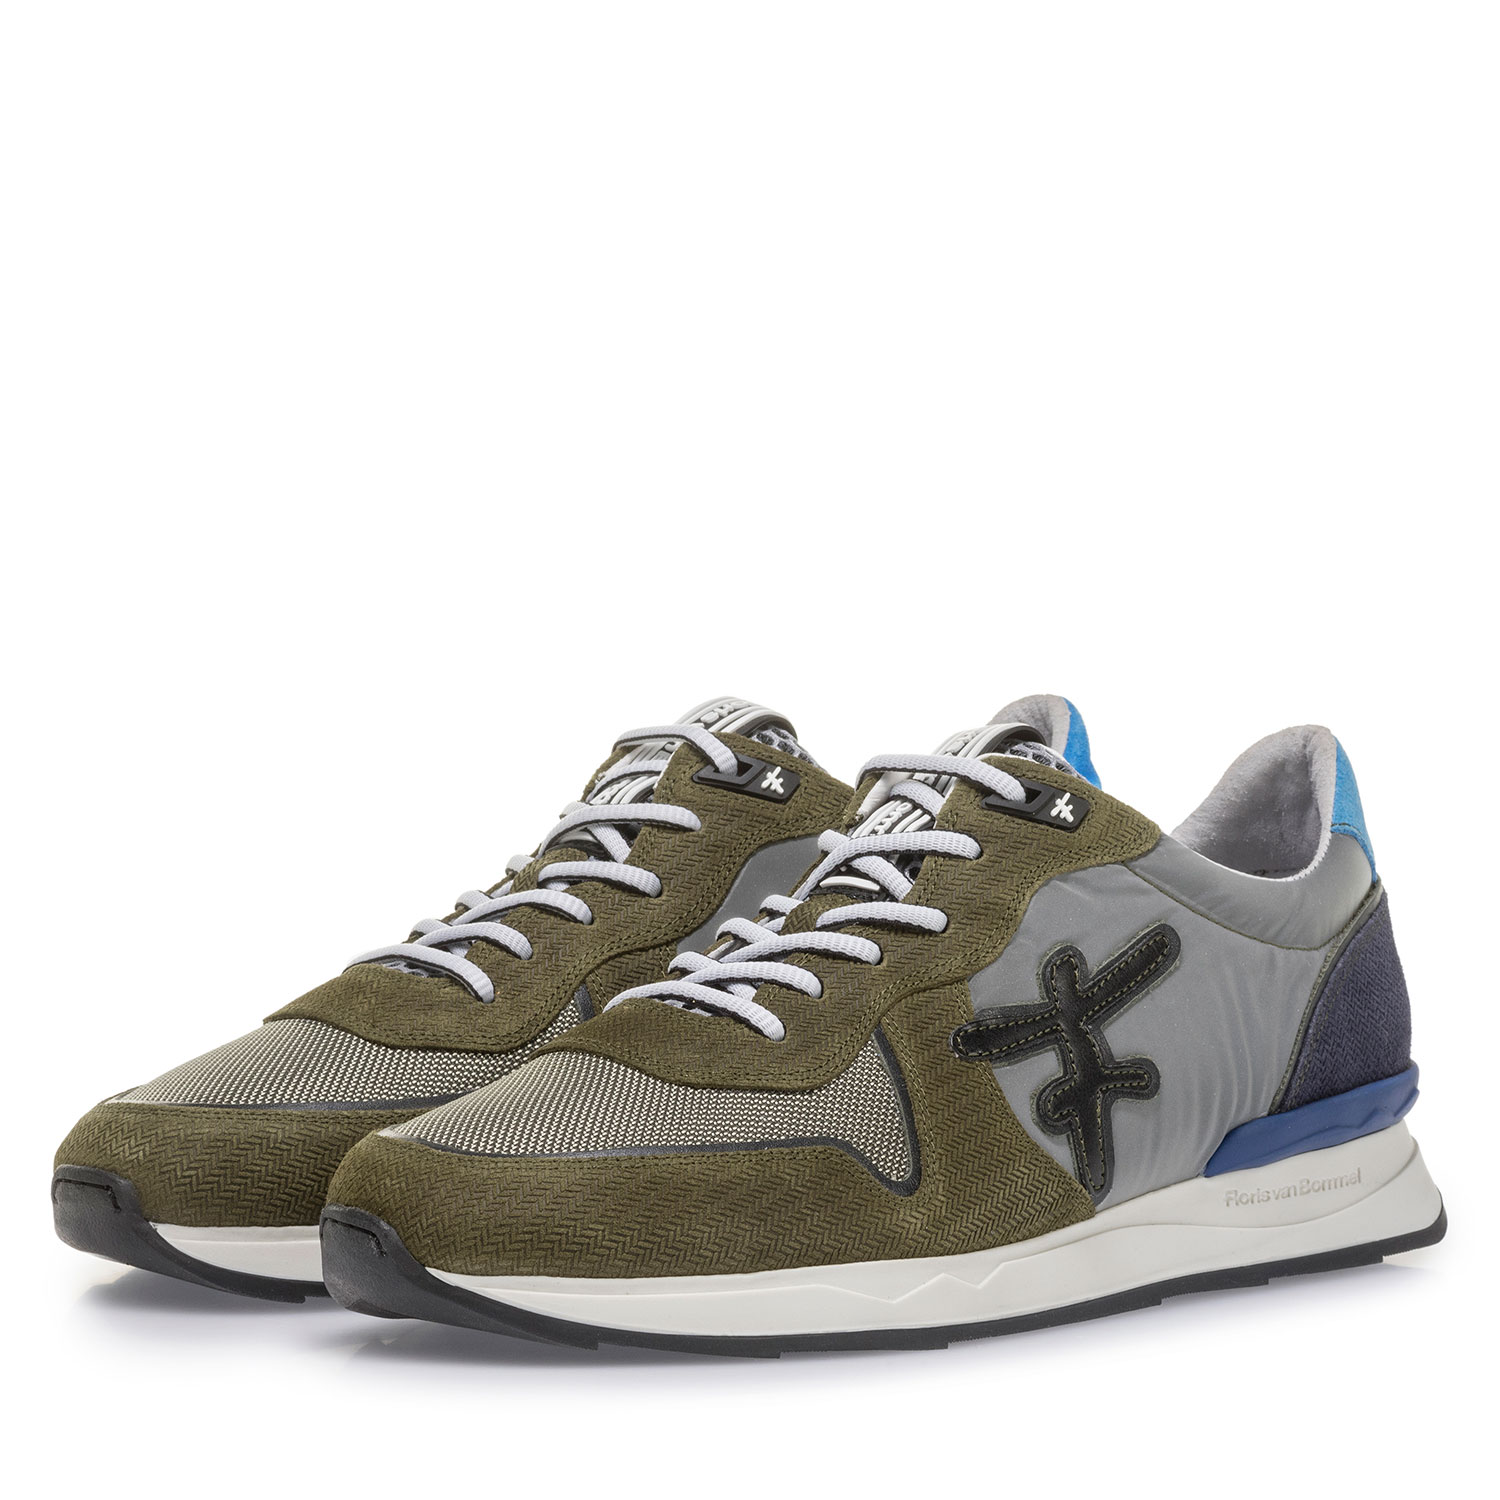 16346/04 - Olive green suede leather sneaker with print